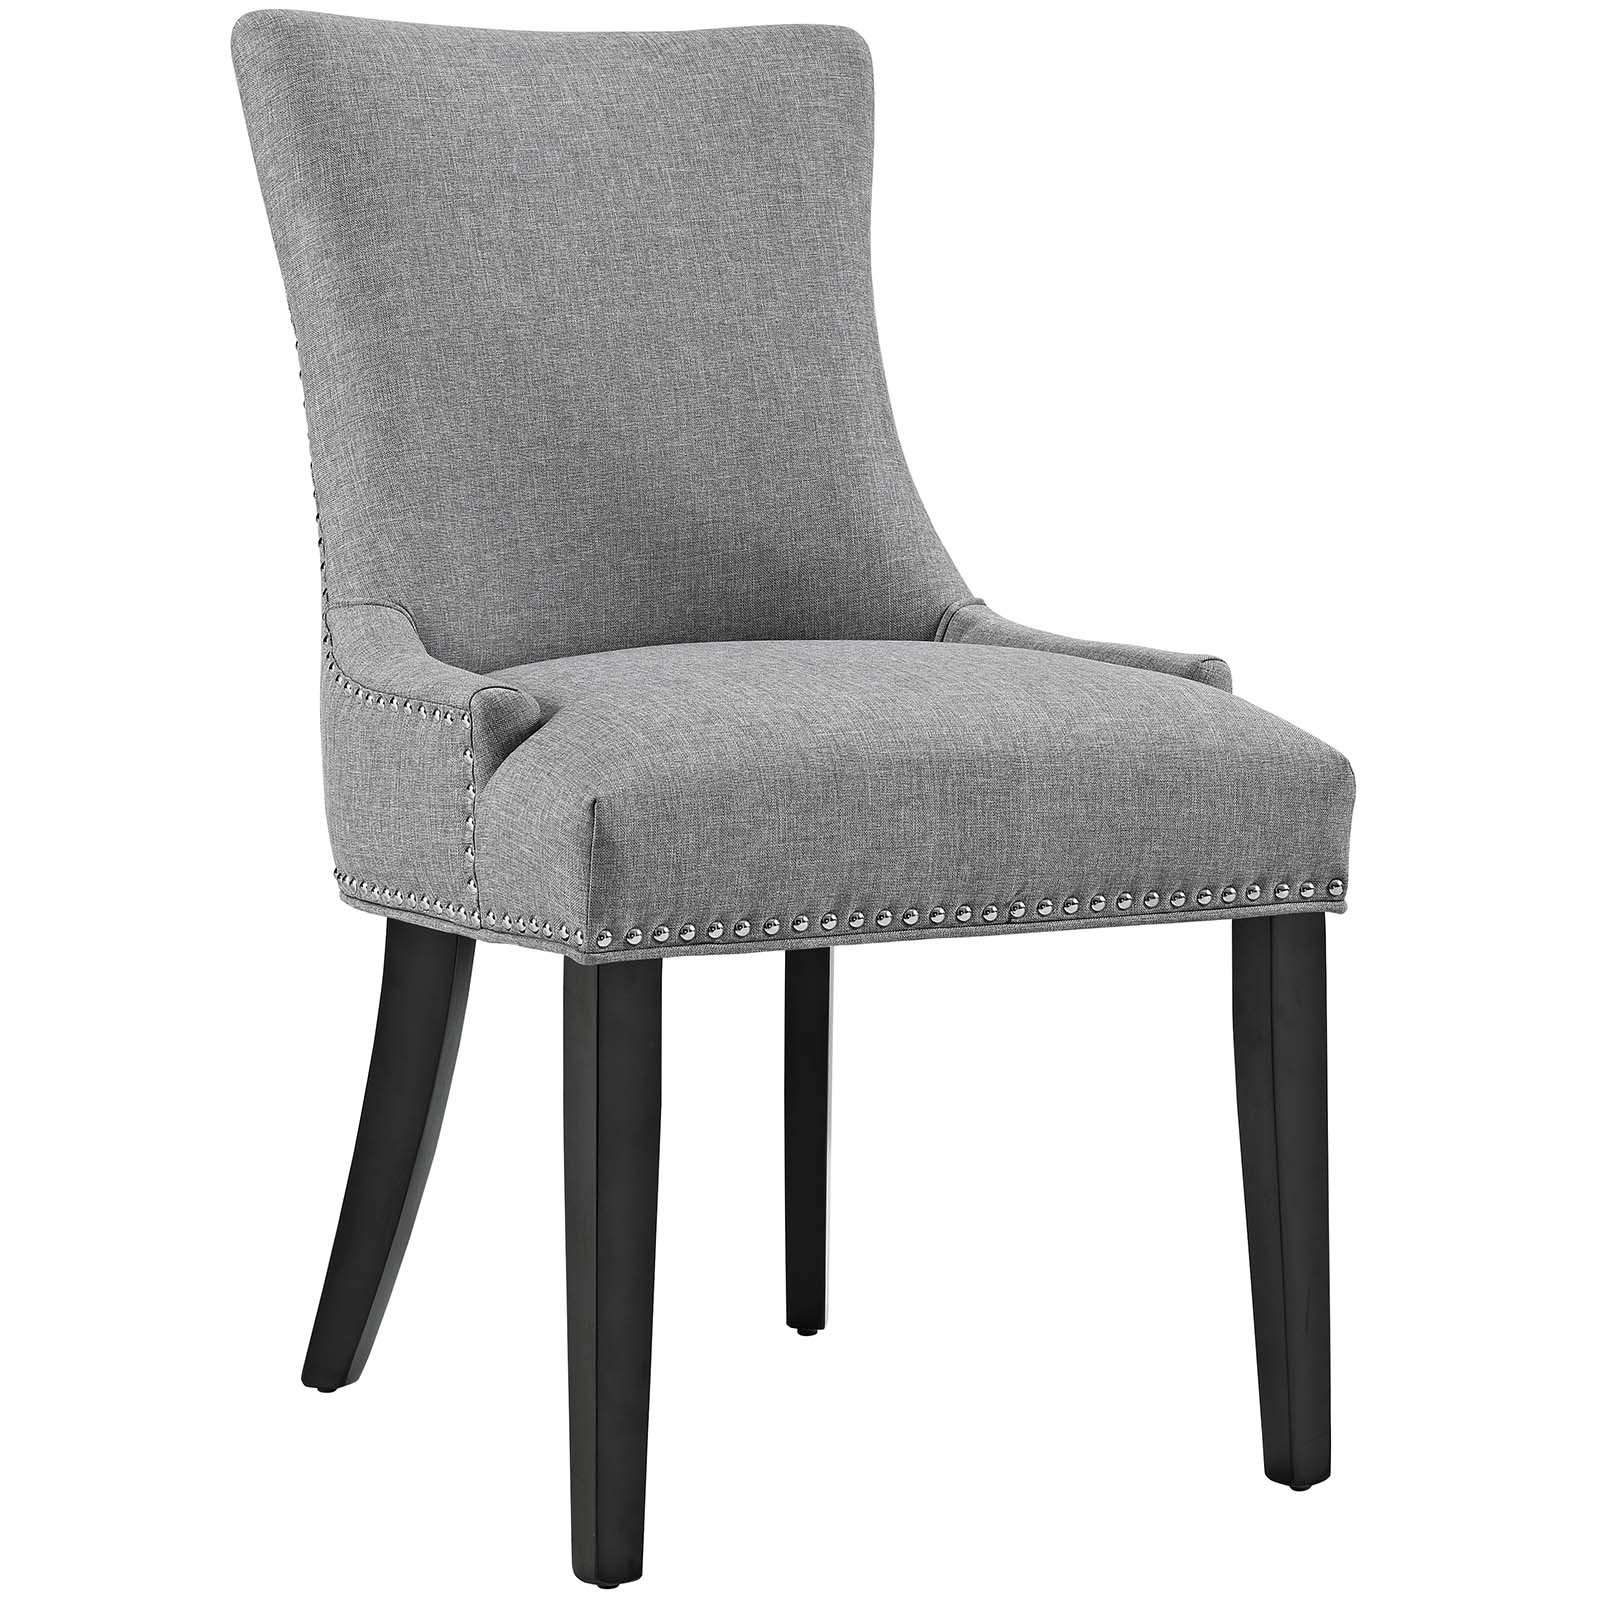 Modway Marquis Modern Elegant Upholstered Fabric Parsons Dining Side Chair With Nailhead Trim And Wood Legs In Light Gray